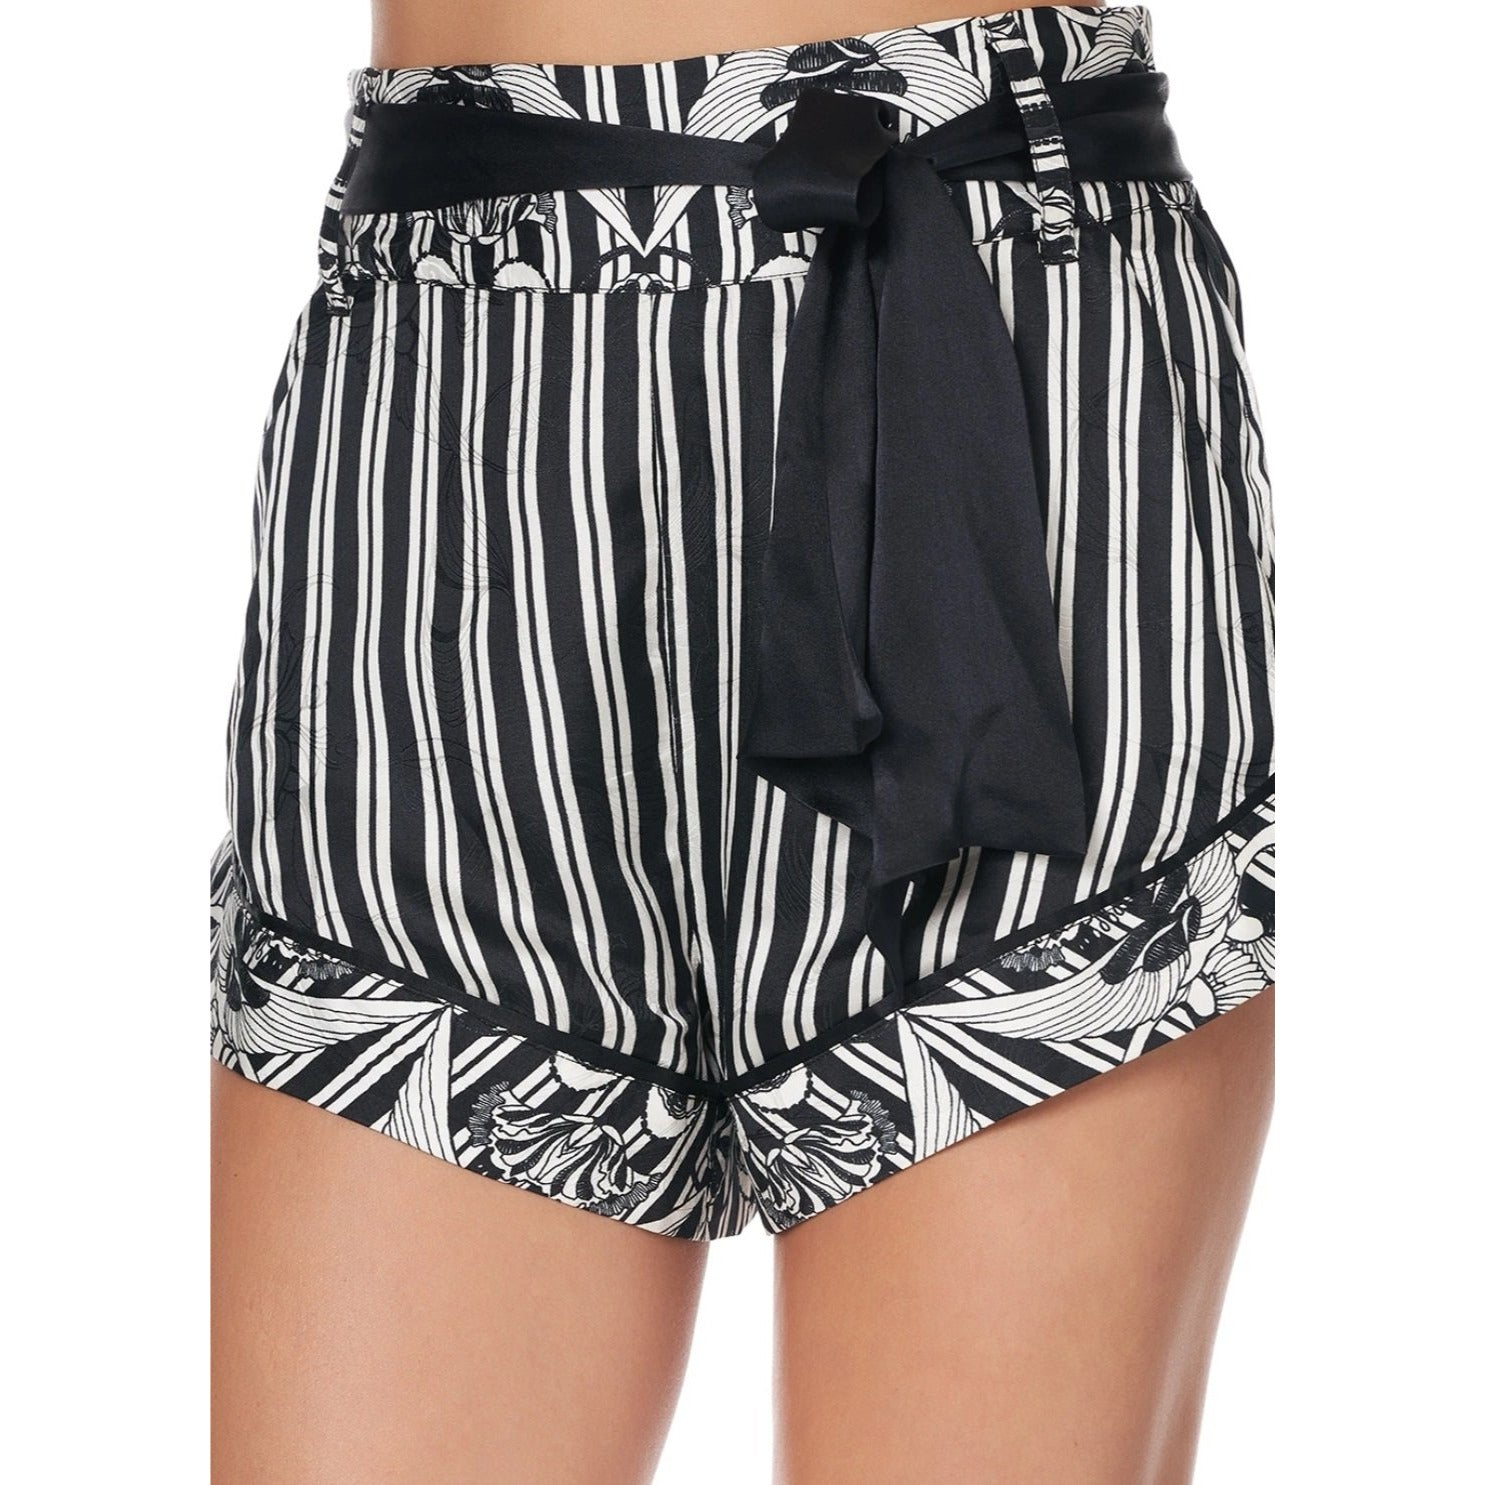 Silver Linings Tie Detail High Cut Shorts